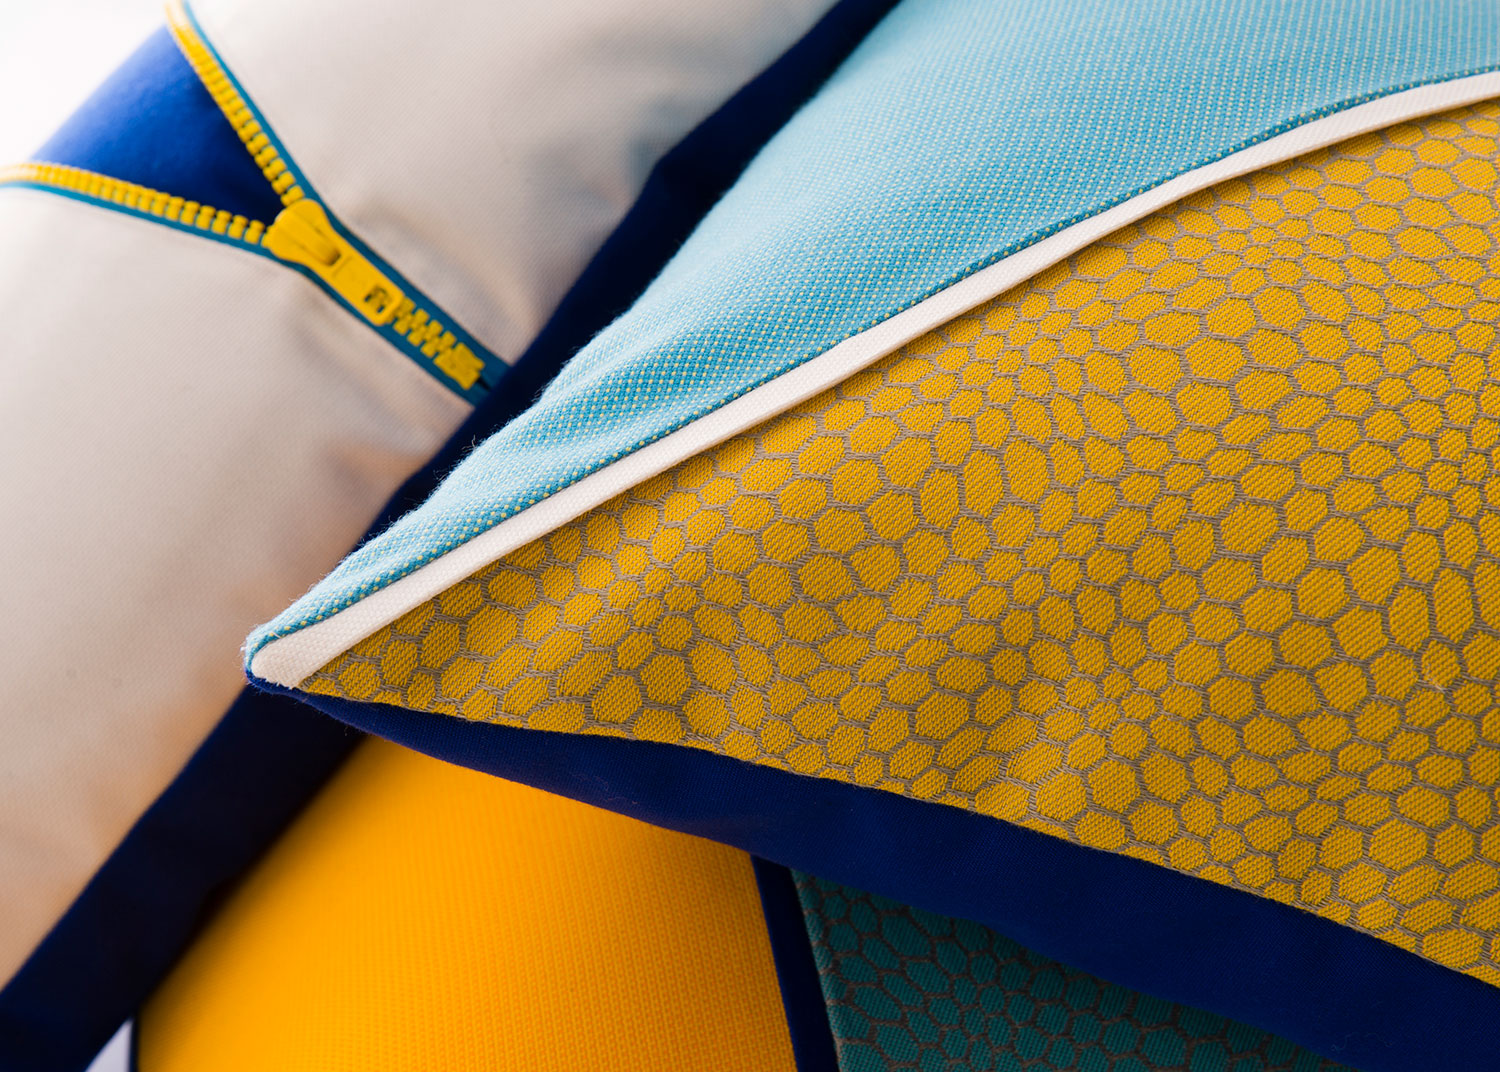 Close up of pillows made with bright blue and yellow Sunbrella fabrics.